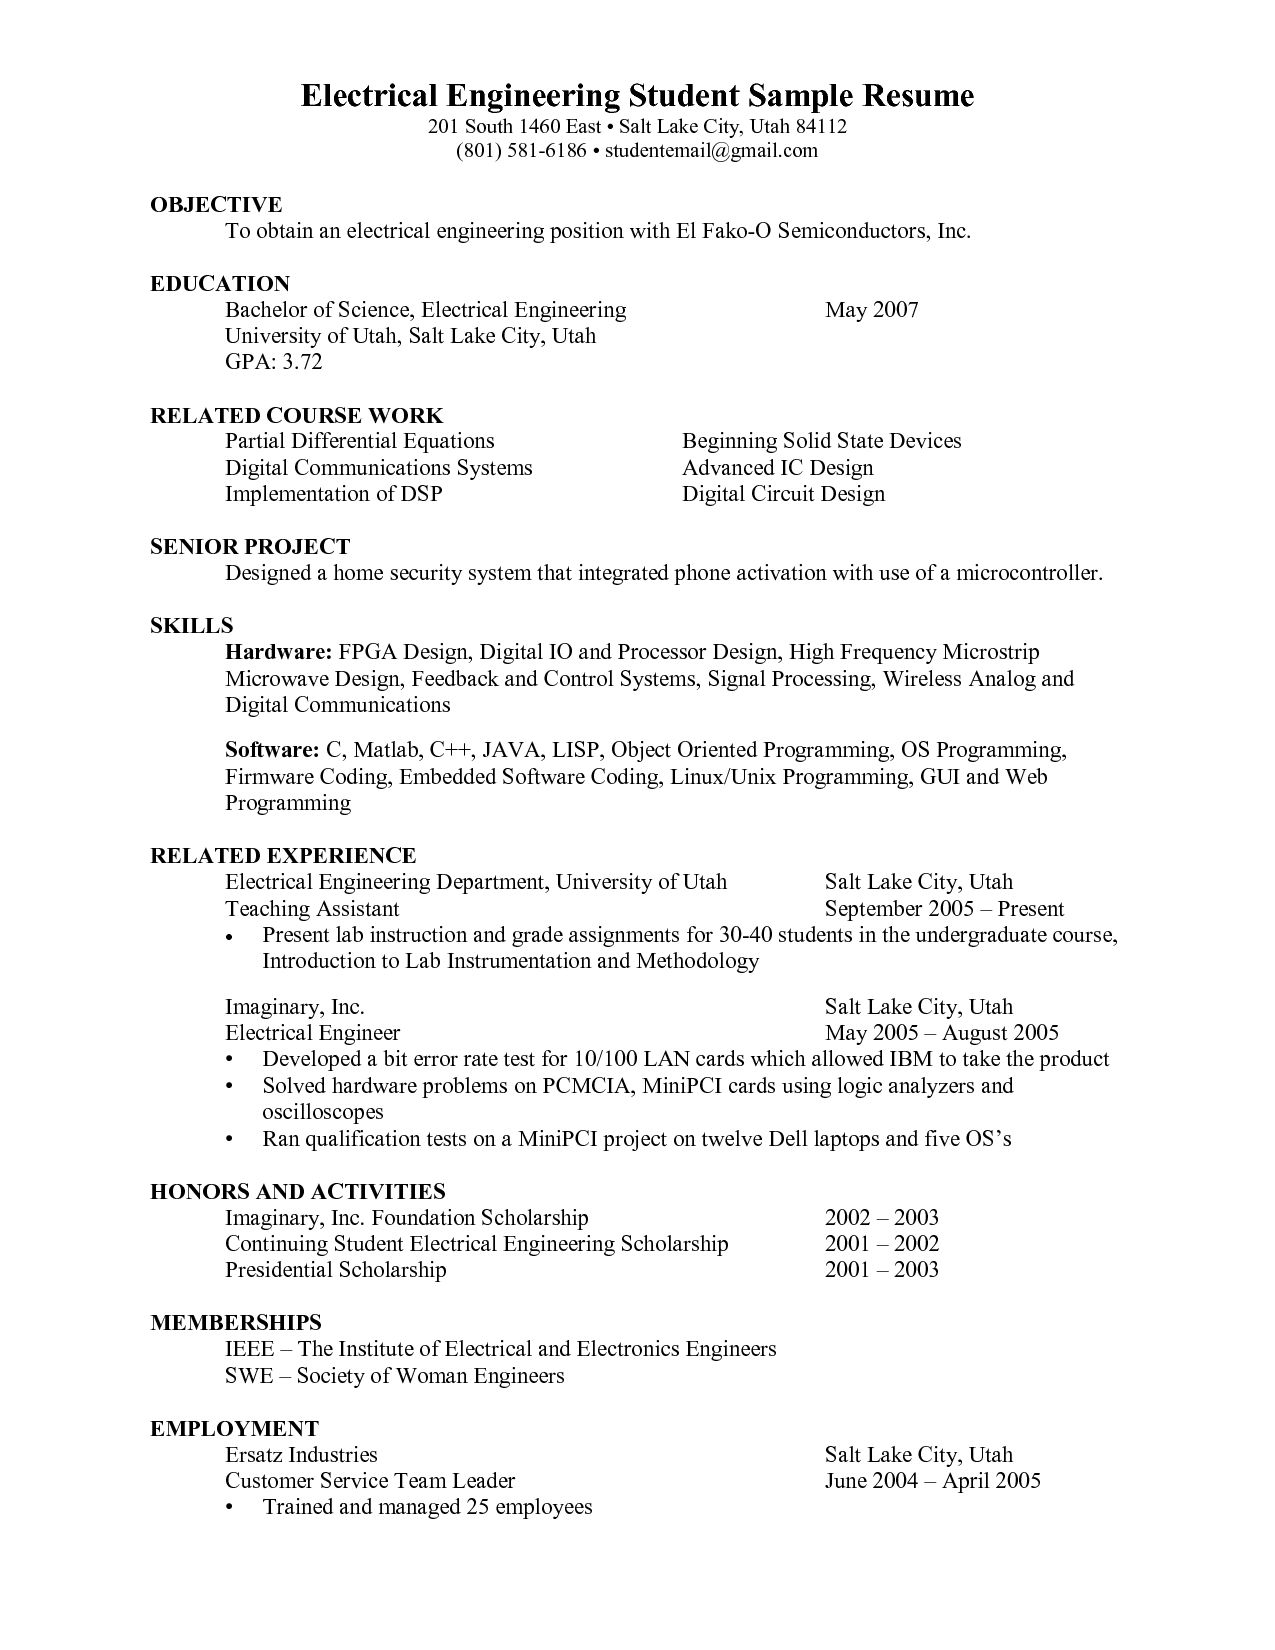 Writing Sample Resume Paper Free Samples Guides Format Cover